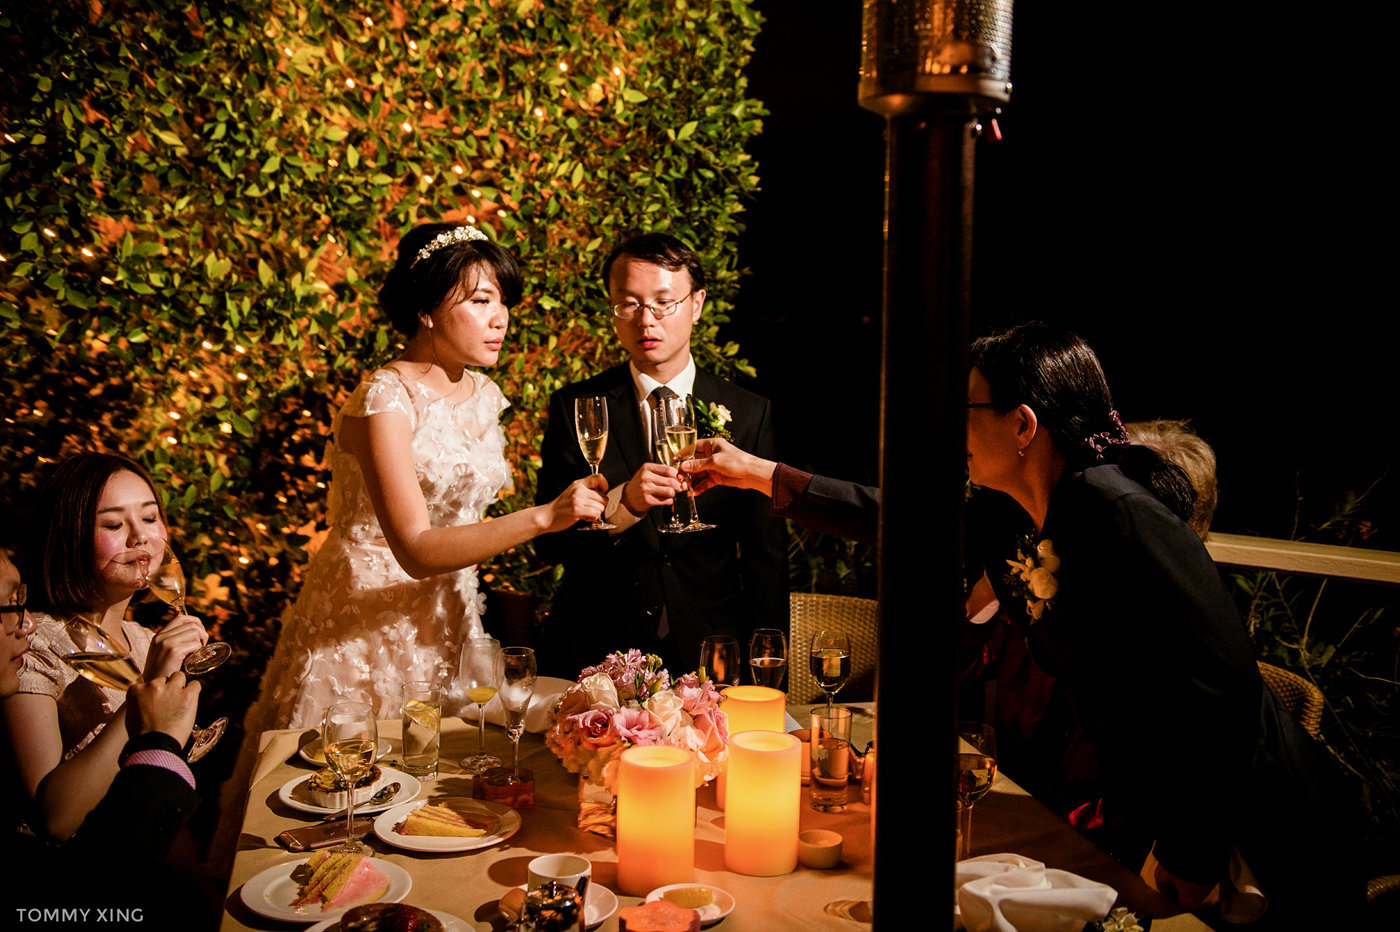 Qinglu Meng & Daozheng Chen Wedding Slideshow-237-E.JPG